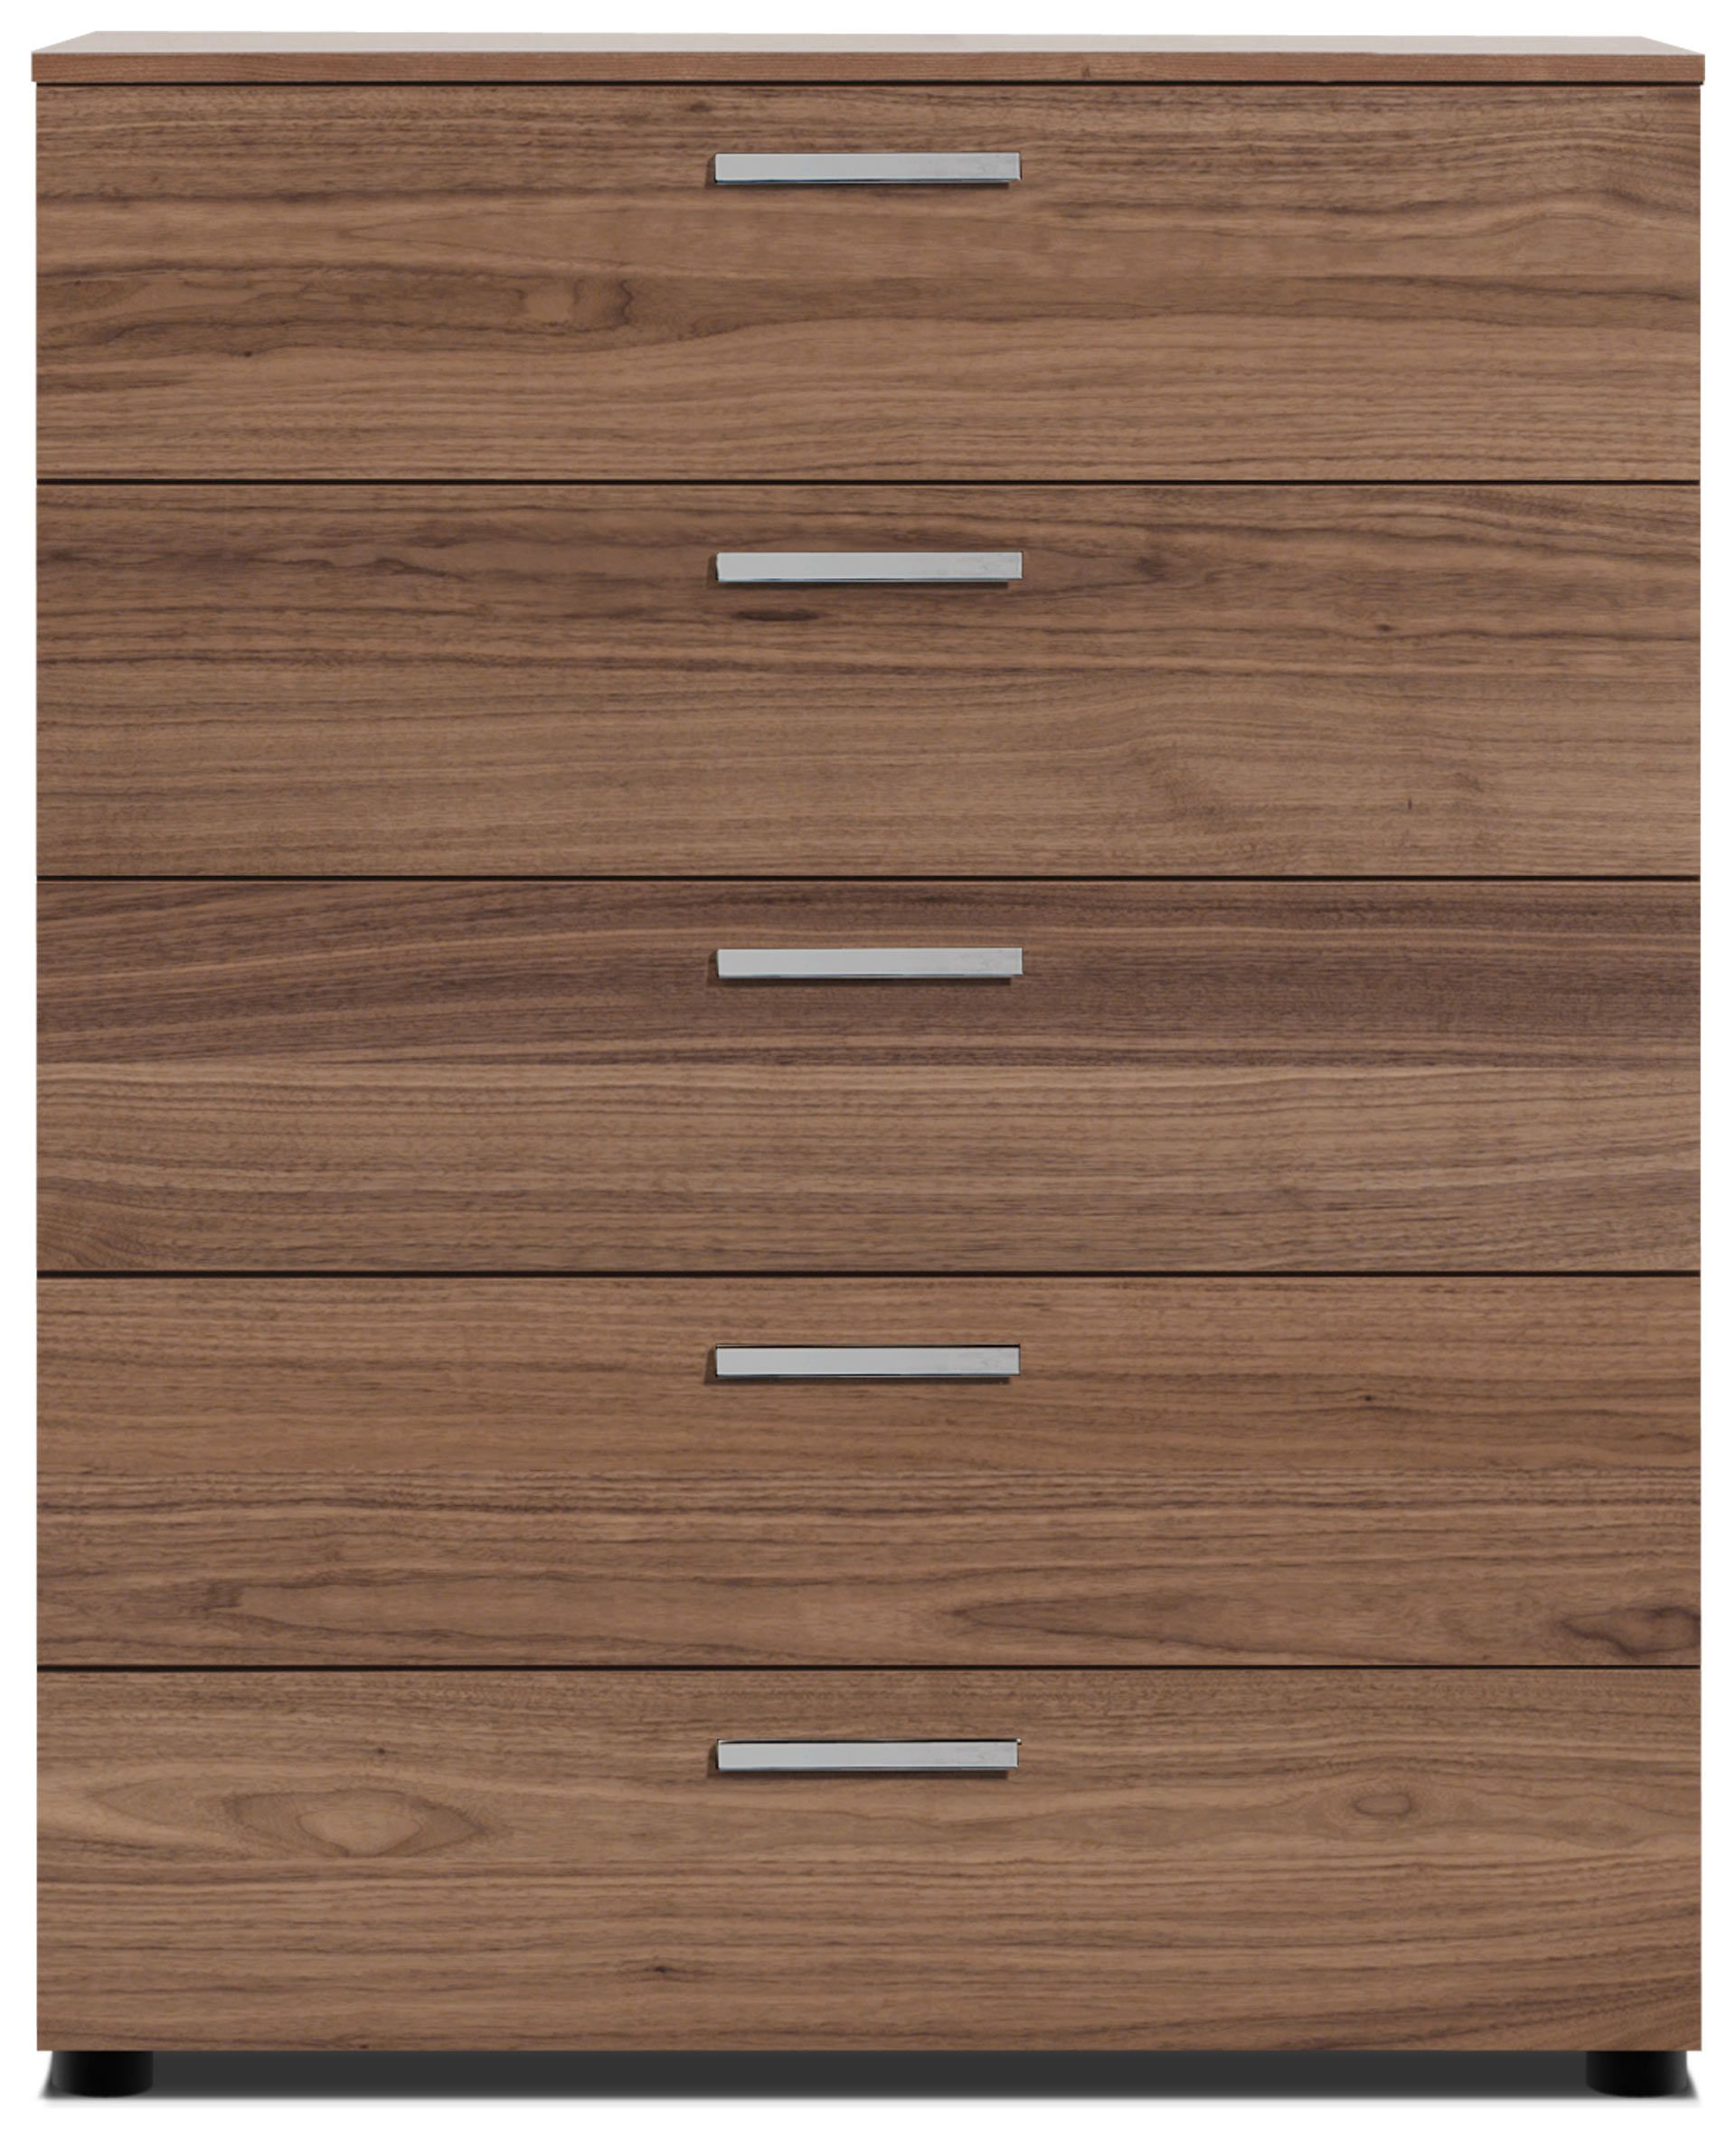 for the bedroom modern chest of drawers  boconcept  - modern chests of drawers  modern dressers  boconcept